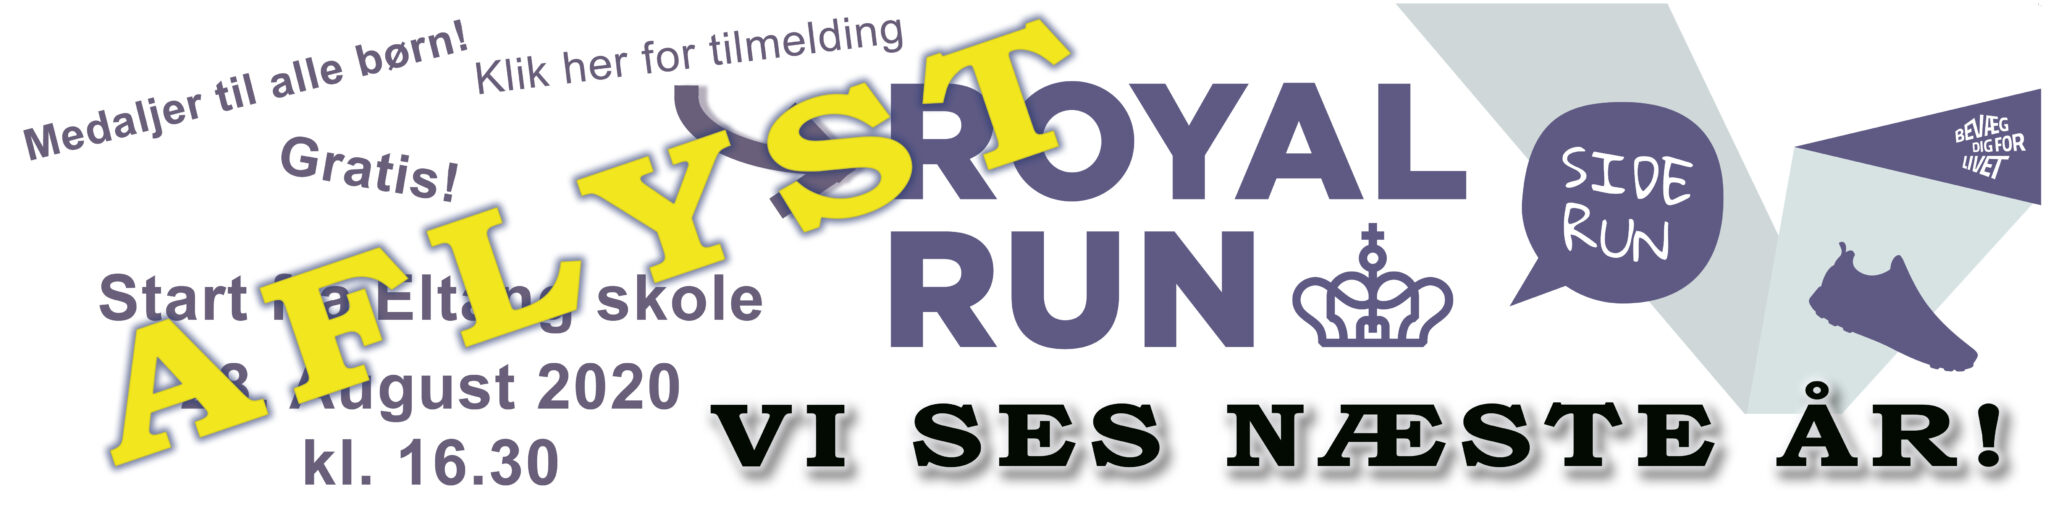 Royal run banner 2020 august aflyst